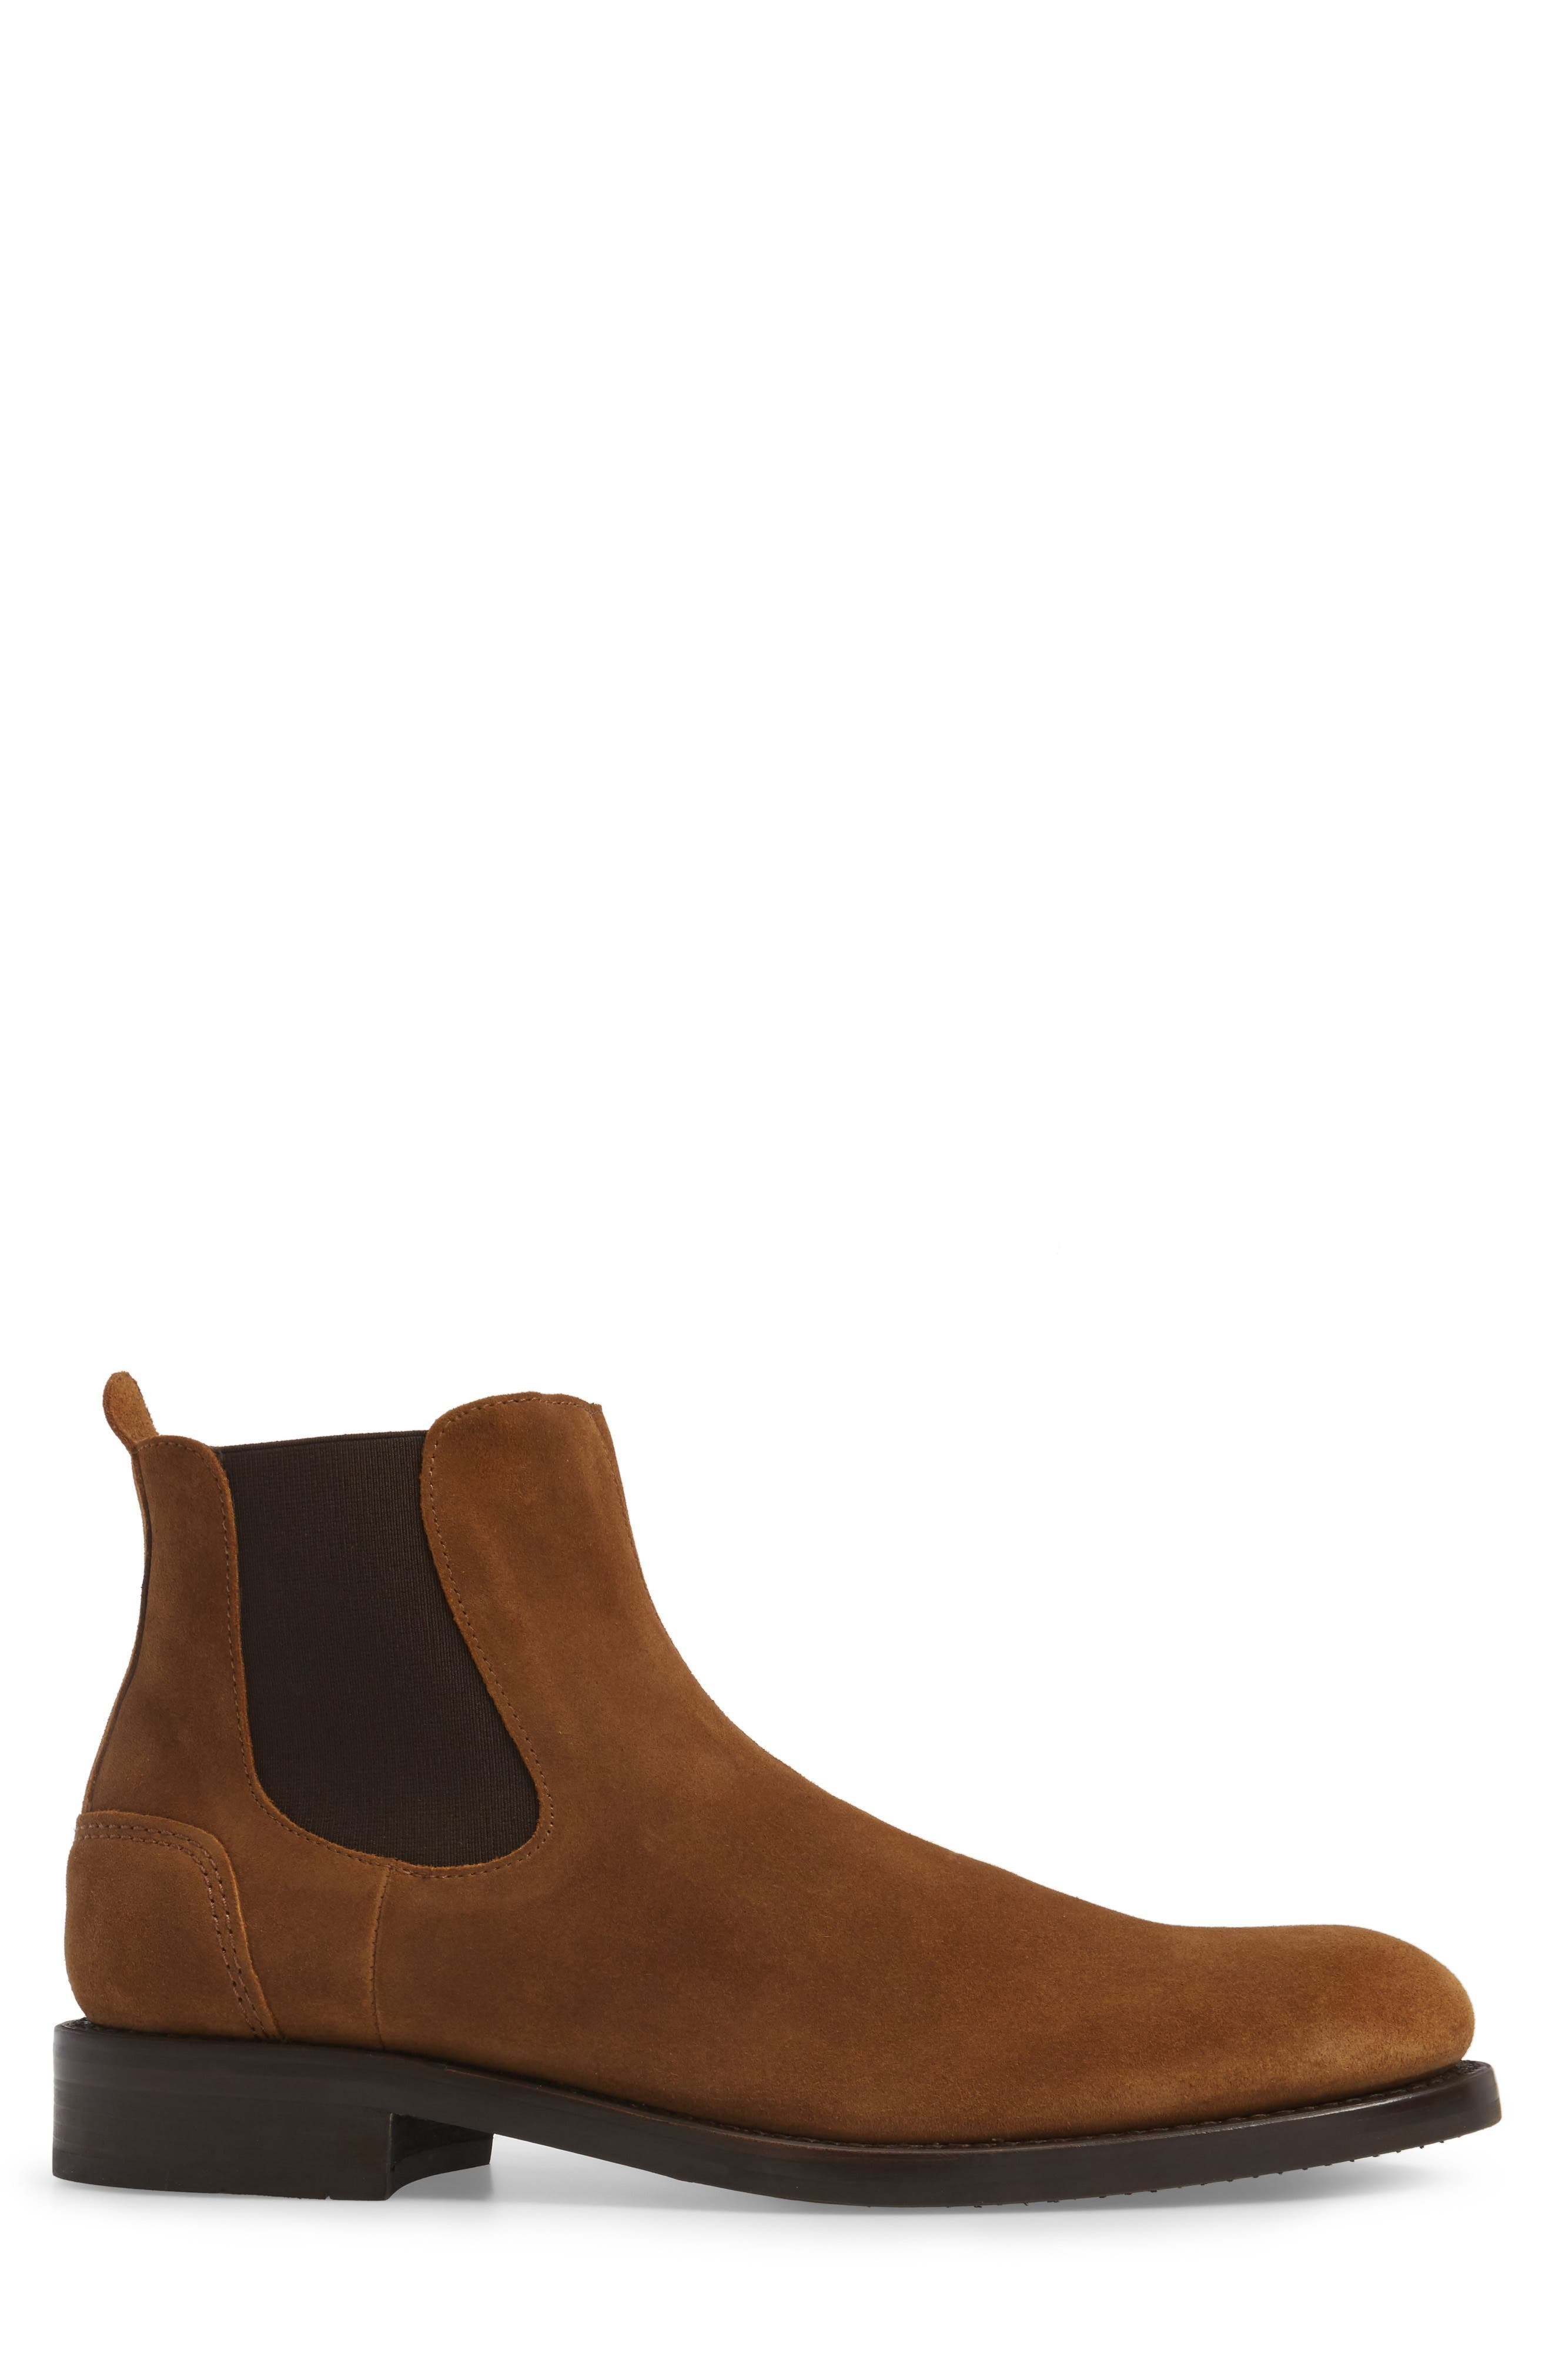 Alternate Image 3  - Wolverine Montague Chelsea Boot